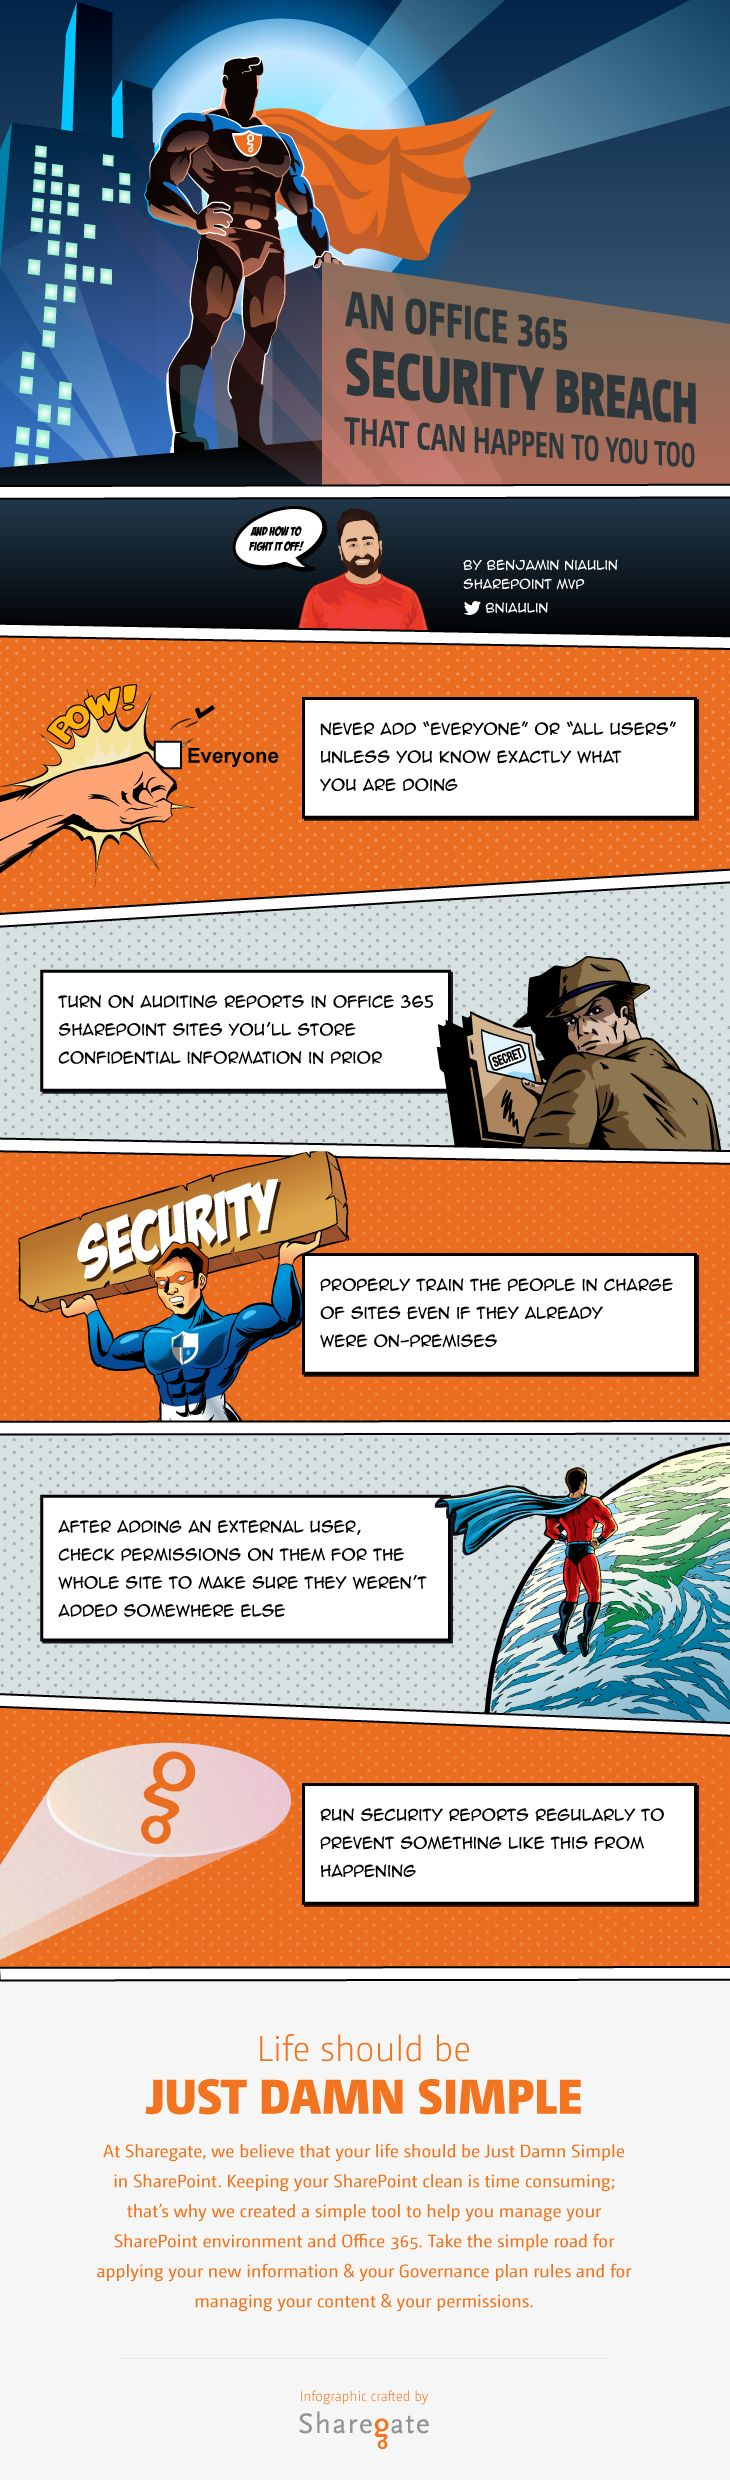 Infographic on SharePoint Security in Office 365 focused on External Sharing